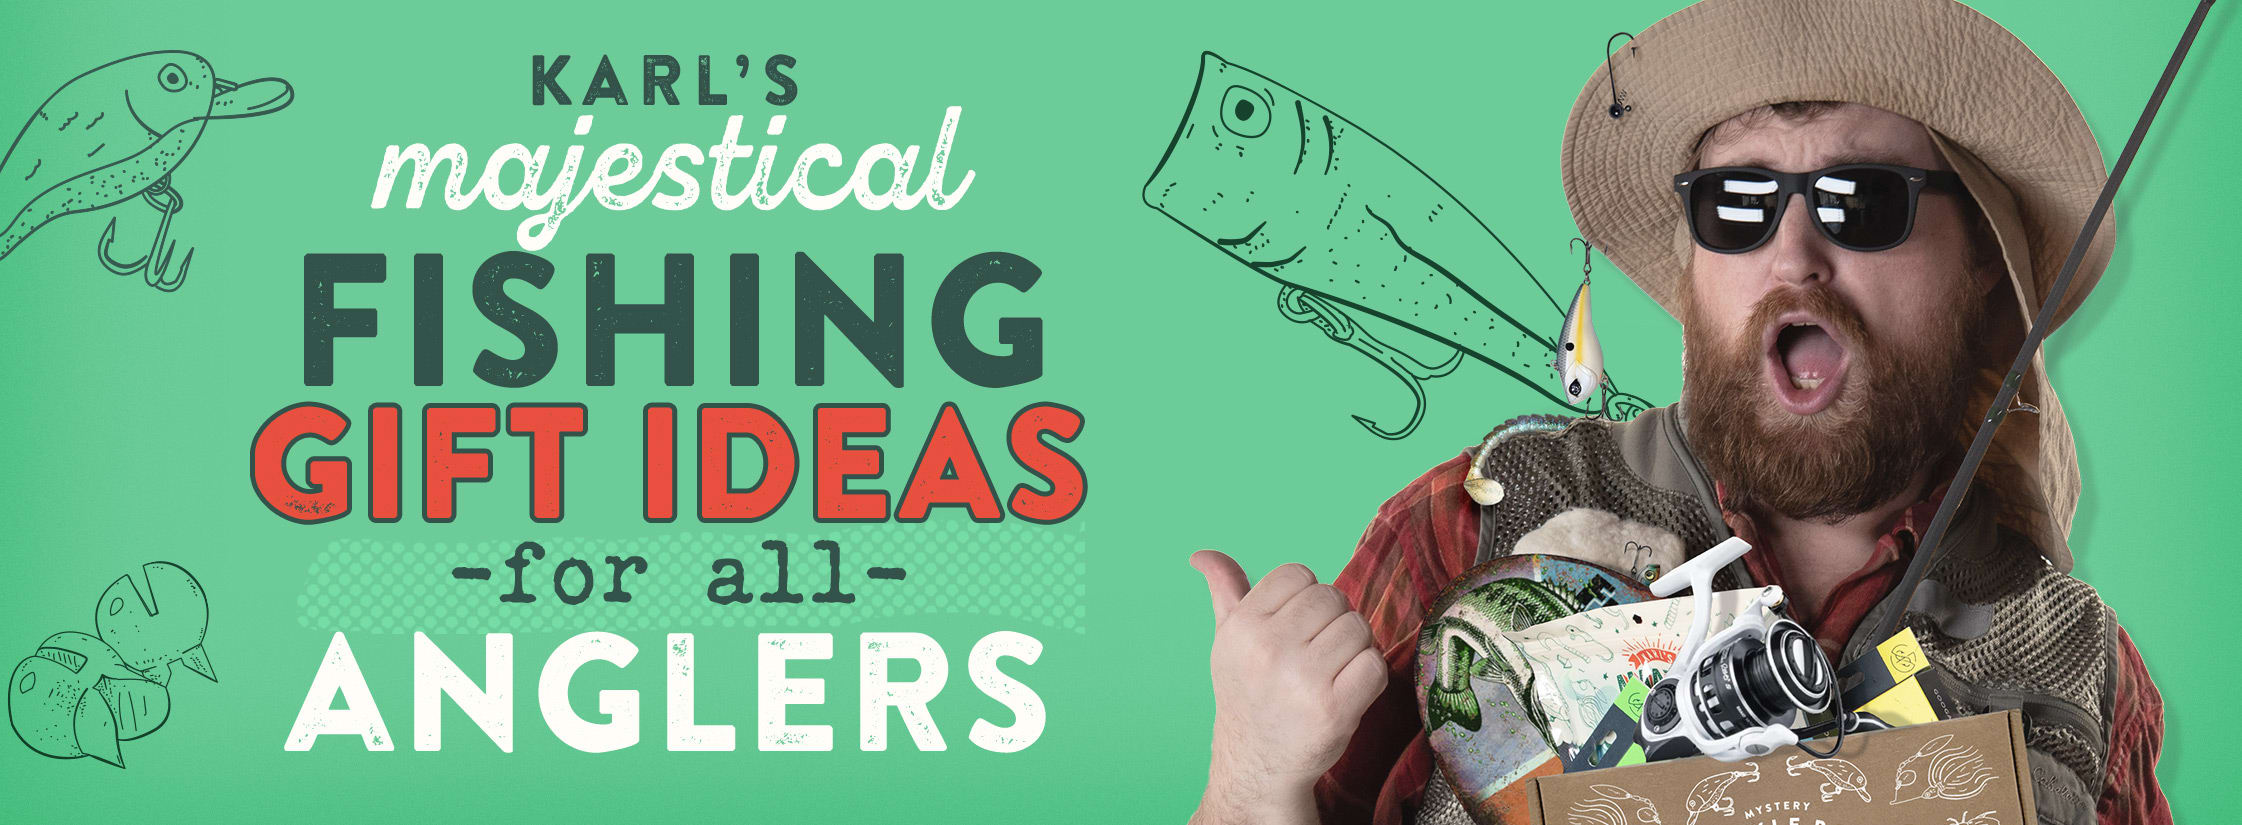 Karl's Fantastically Fantastical Fishing Gift Ideas; Karl's handpicked best fishing gifts on the planet